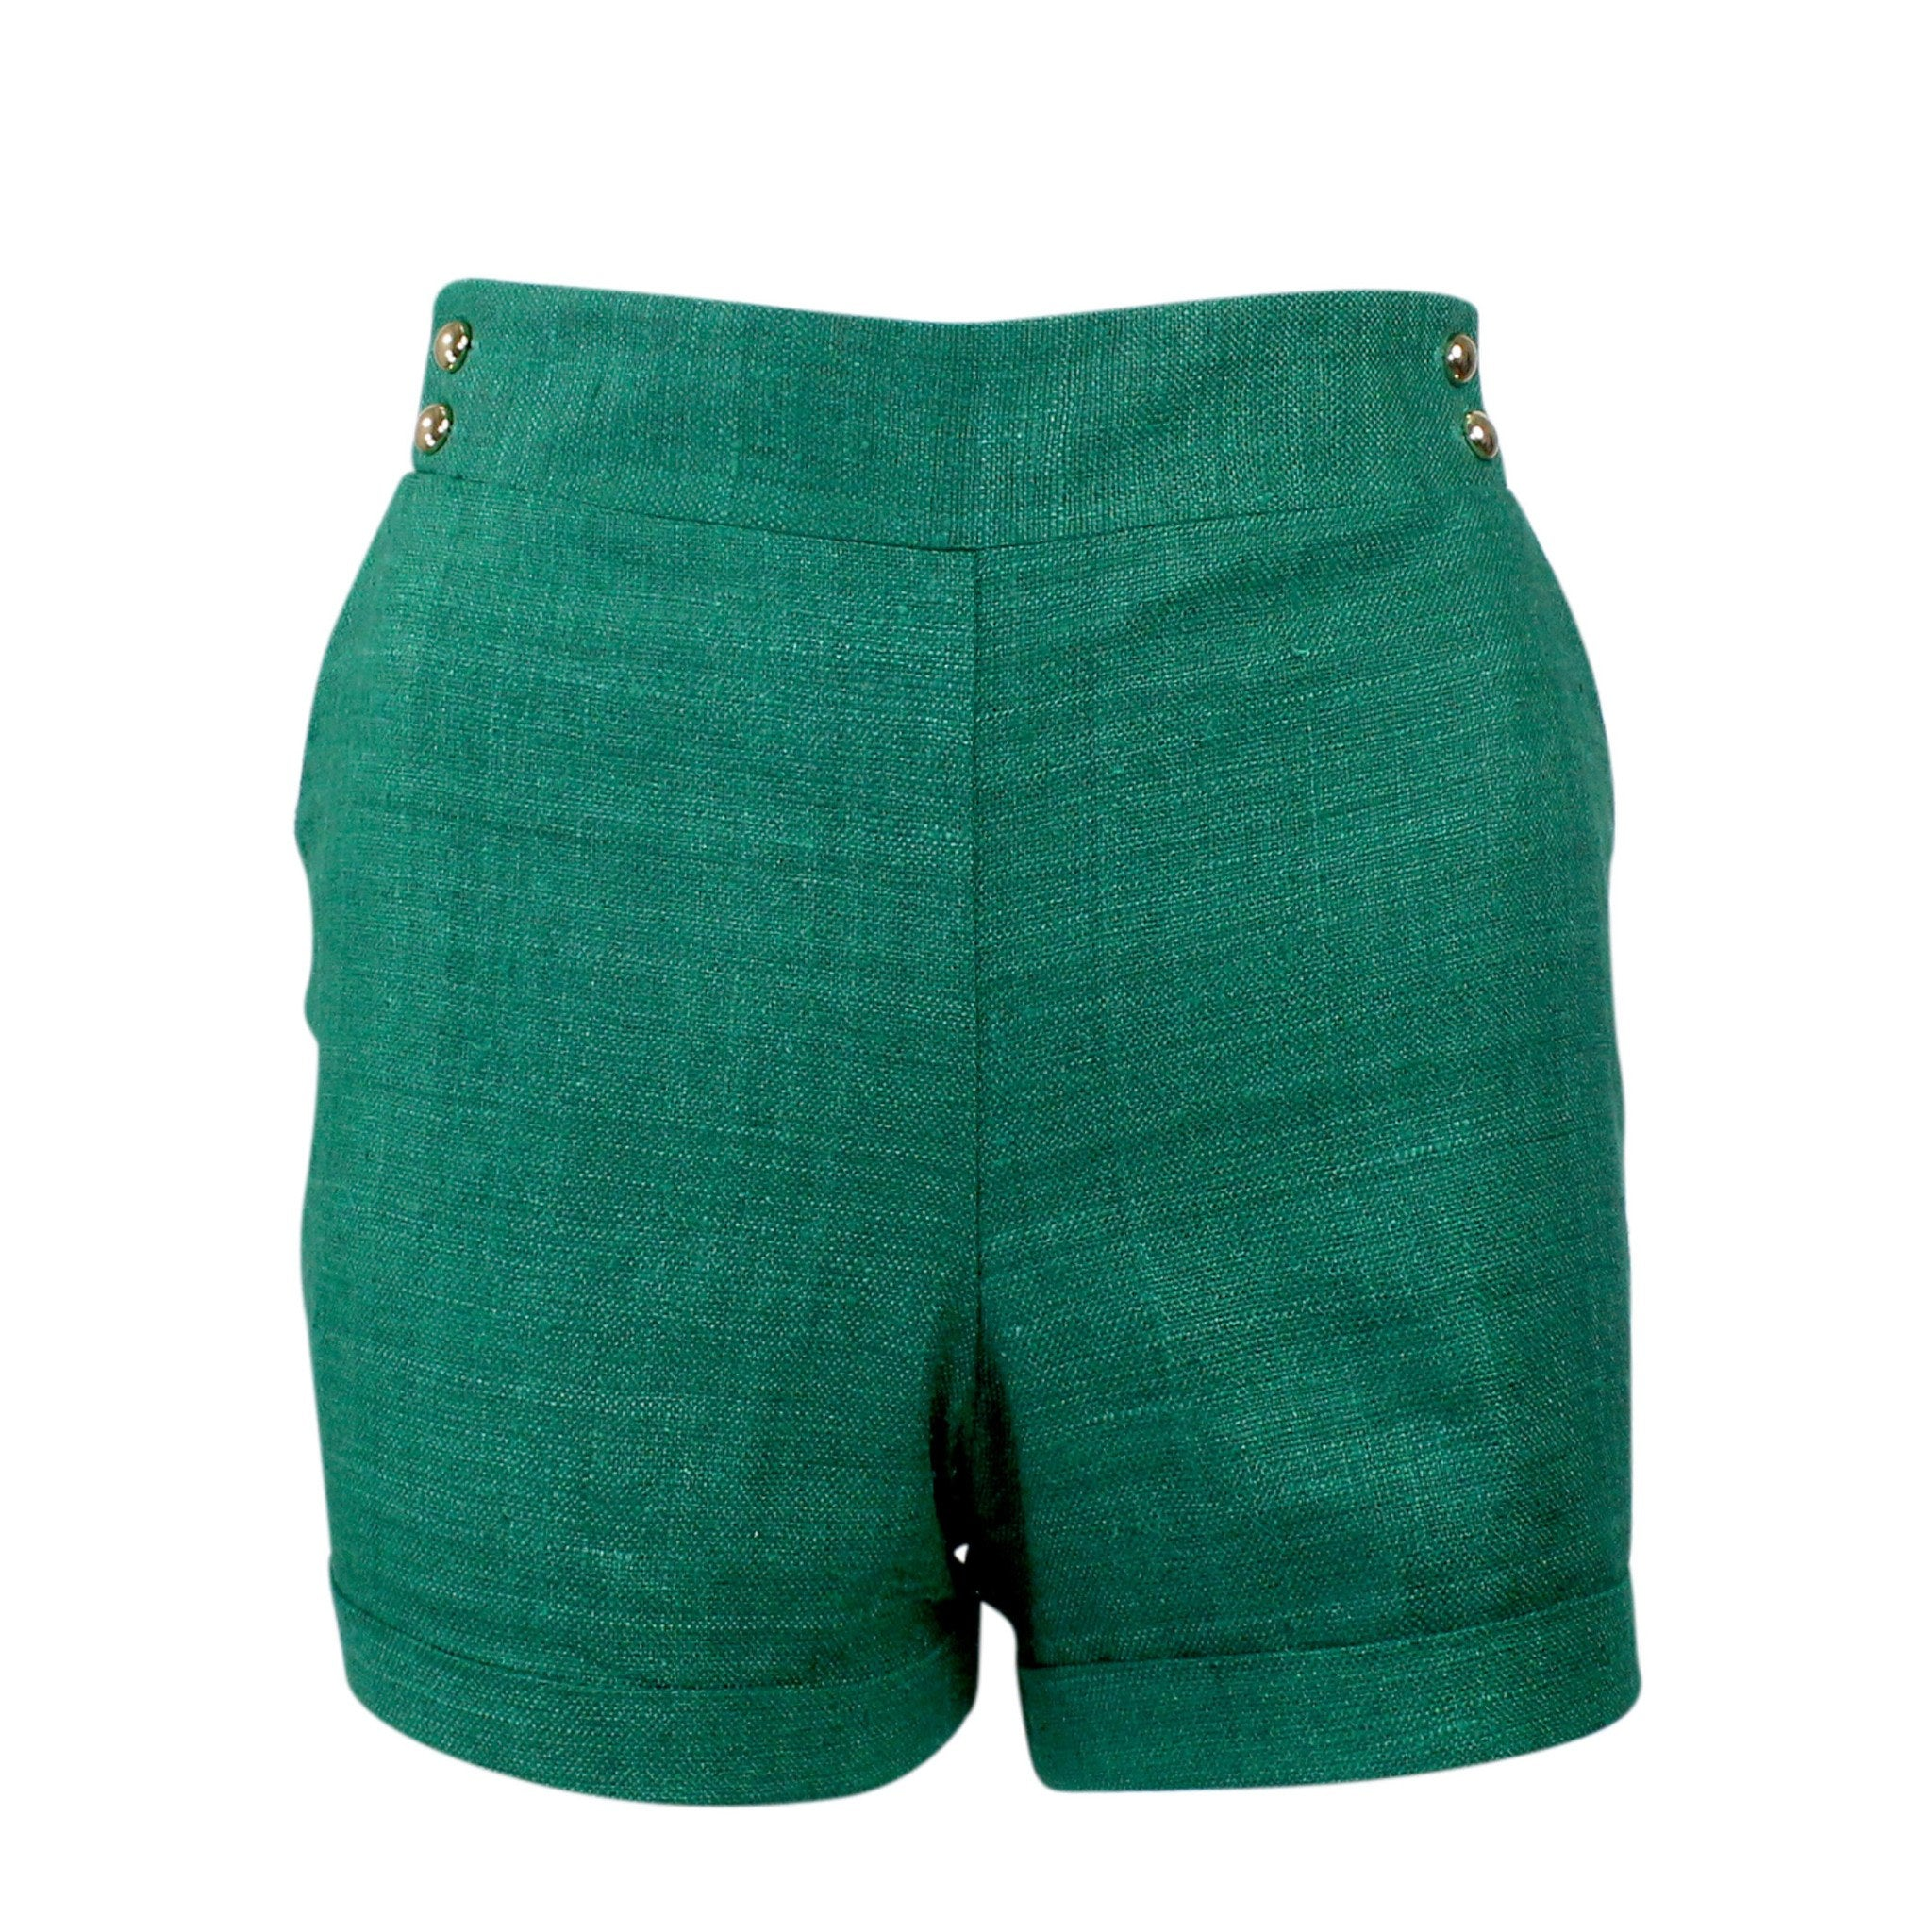 Leona by Lauren Leonard Silk Short with Pockets 4 Jade Muse Boutique Outlet